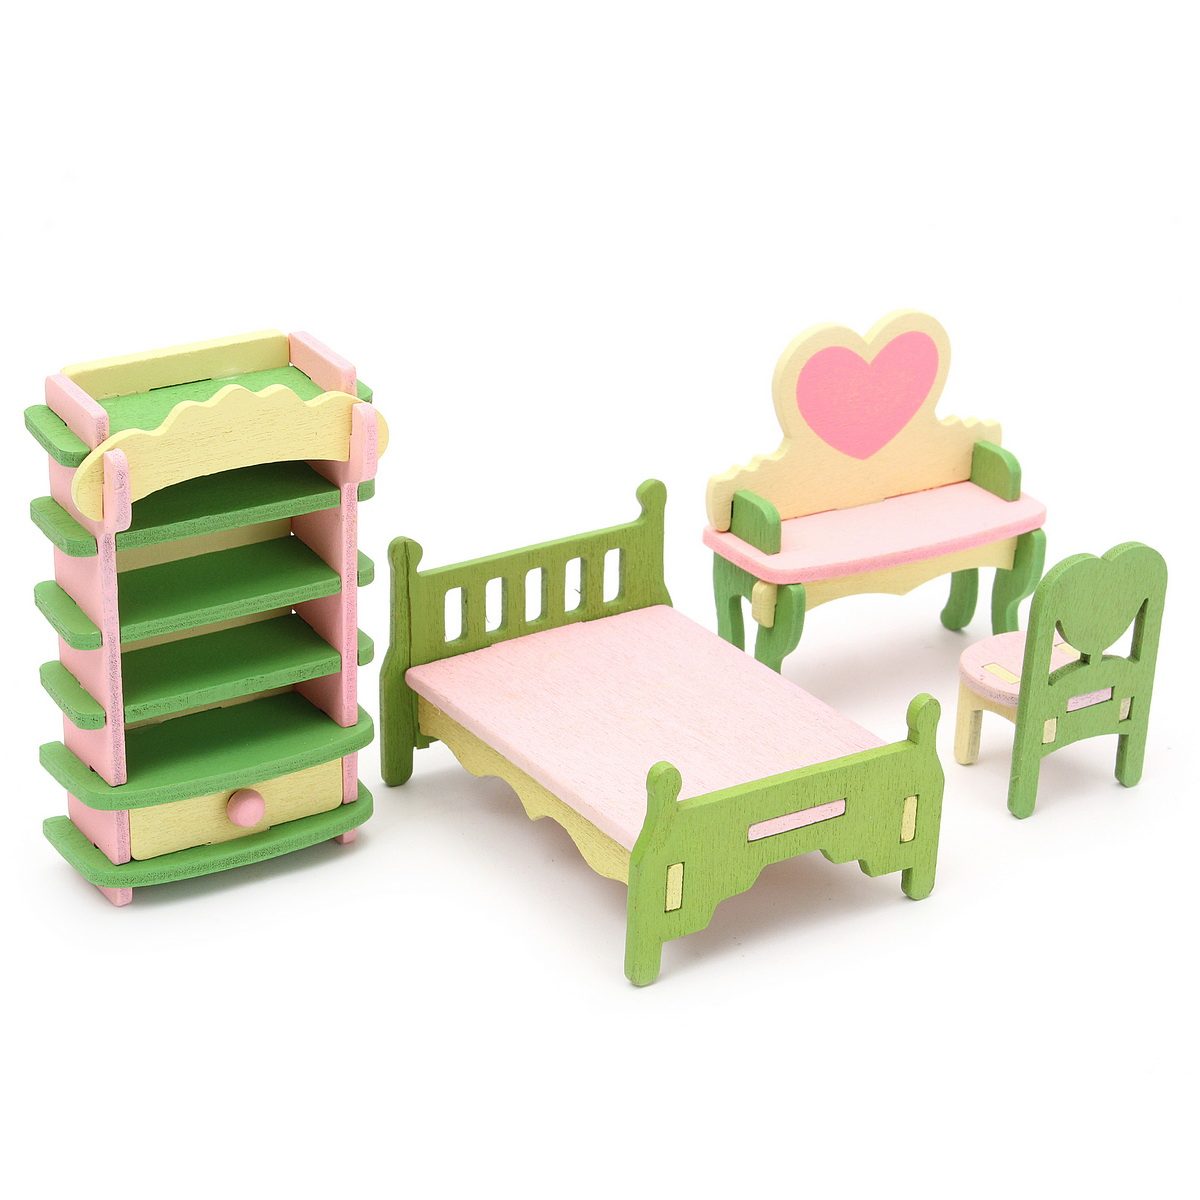 Toys Dollhouse Furniture Doll Accessories Wooden Dolls House Miniature Accessory Room Furniture Set Kids Pretend Play Toys